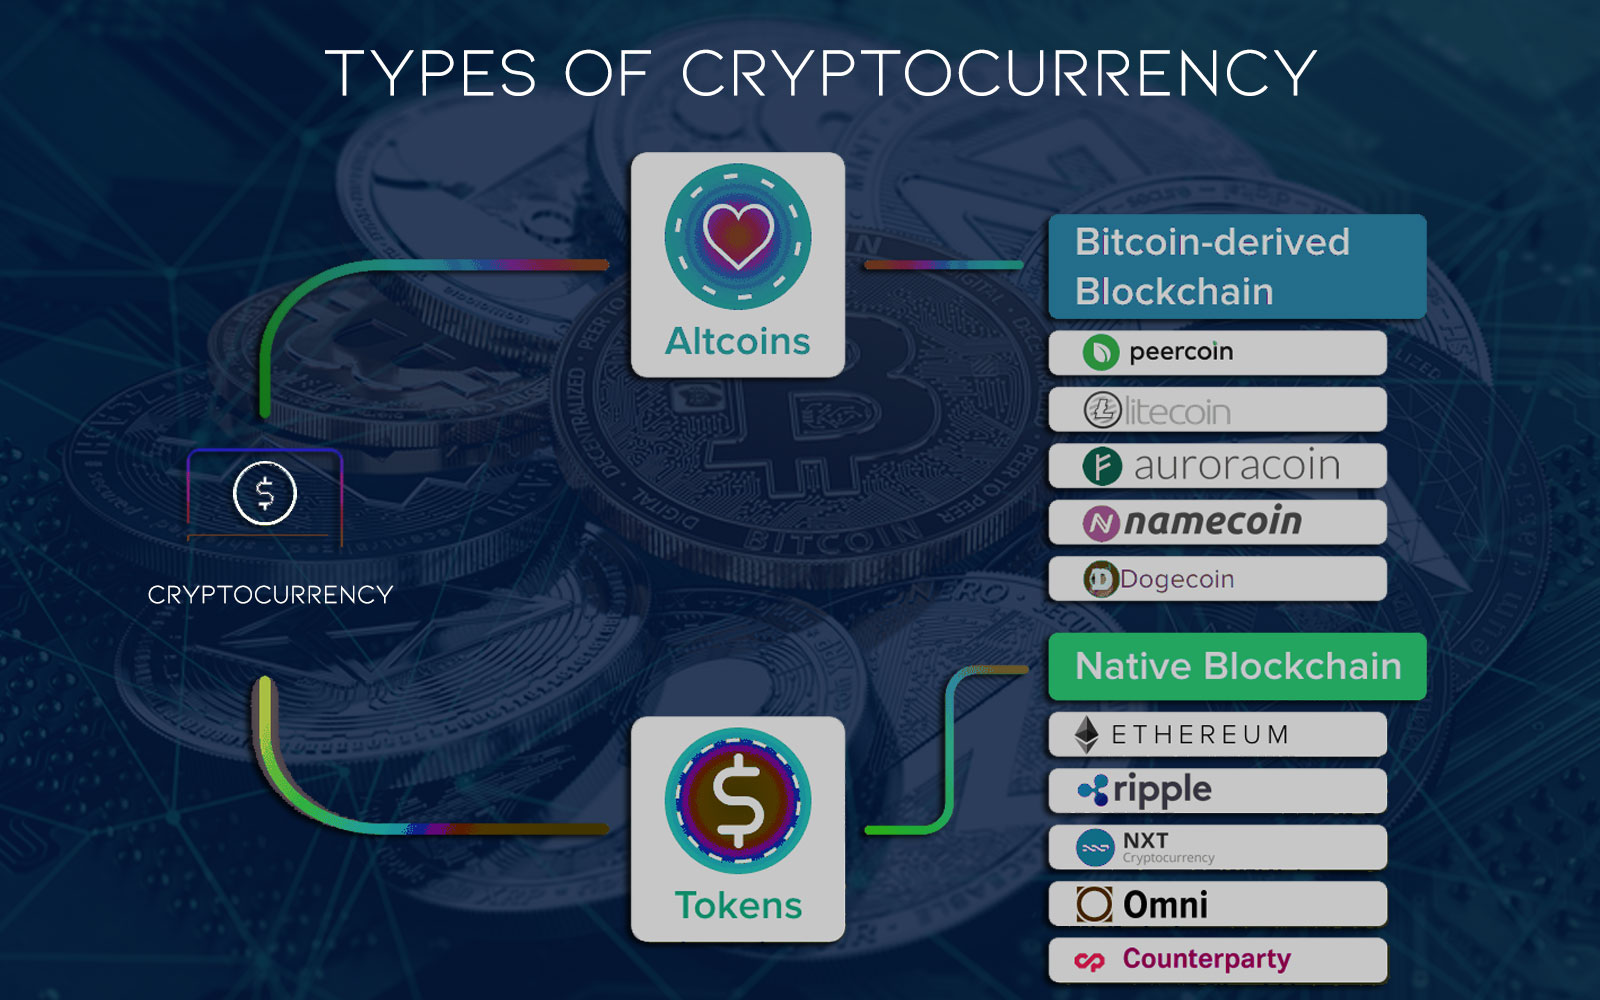 A Visual Organization of Coins, Tokens, and Altcoins | Parangat